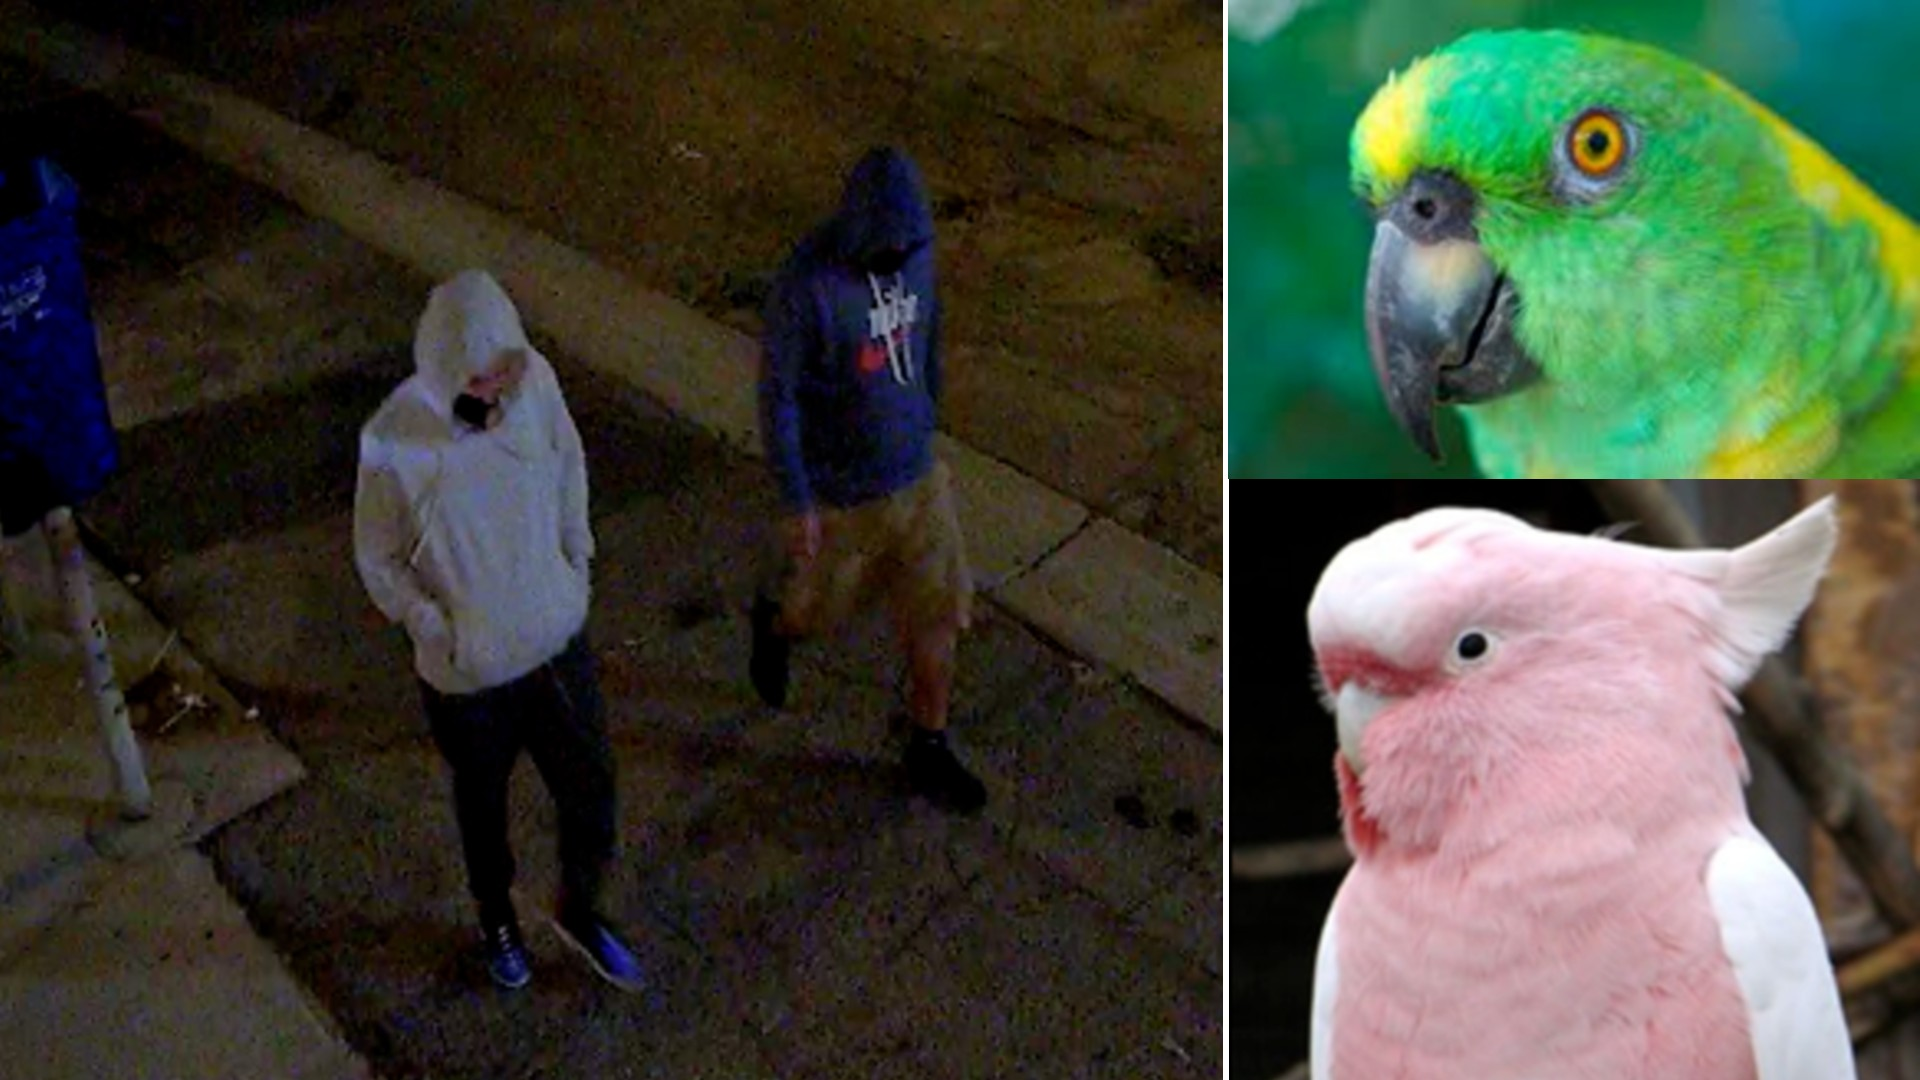 Police are seeking the public's help to locate two exotic birds, Paco and Abbey, who were stolen from Topanga on Aug. 1, 2021. (LAPD)